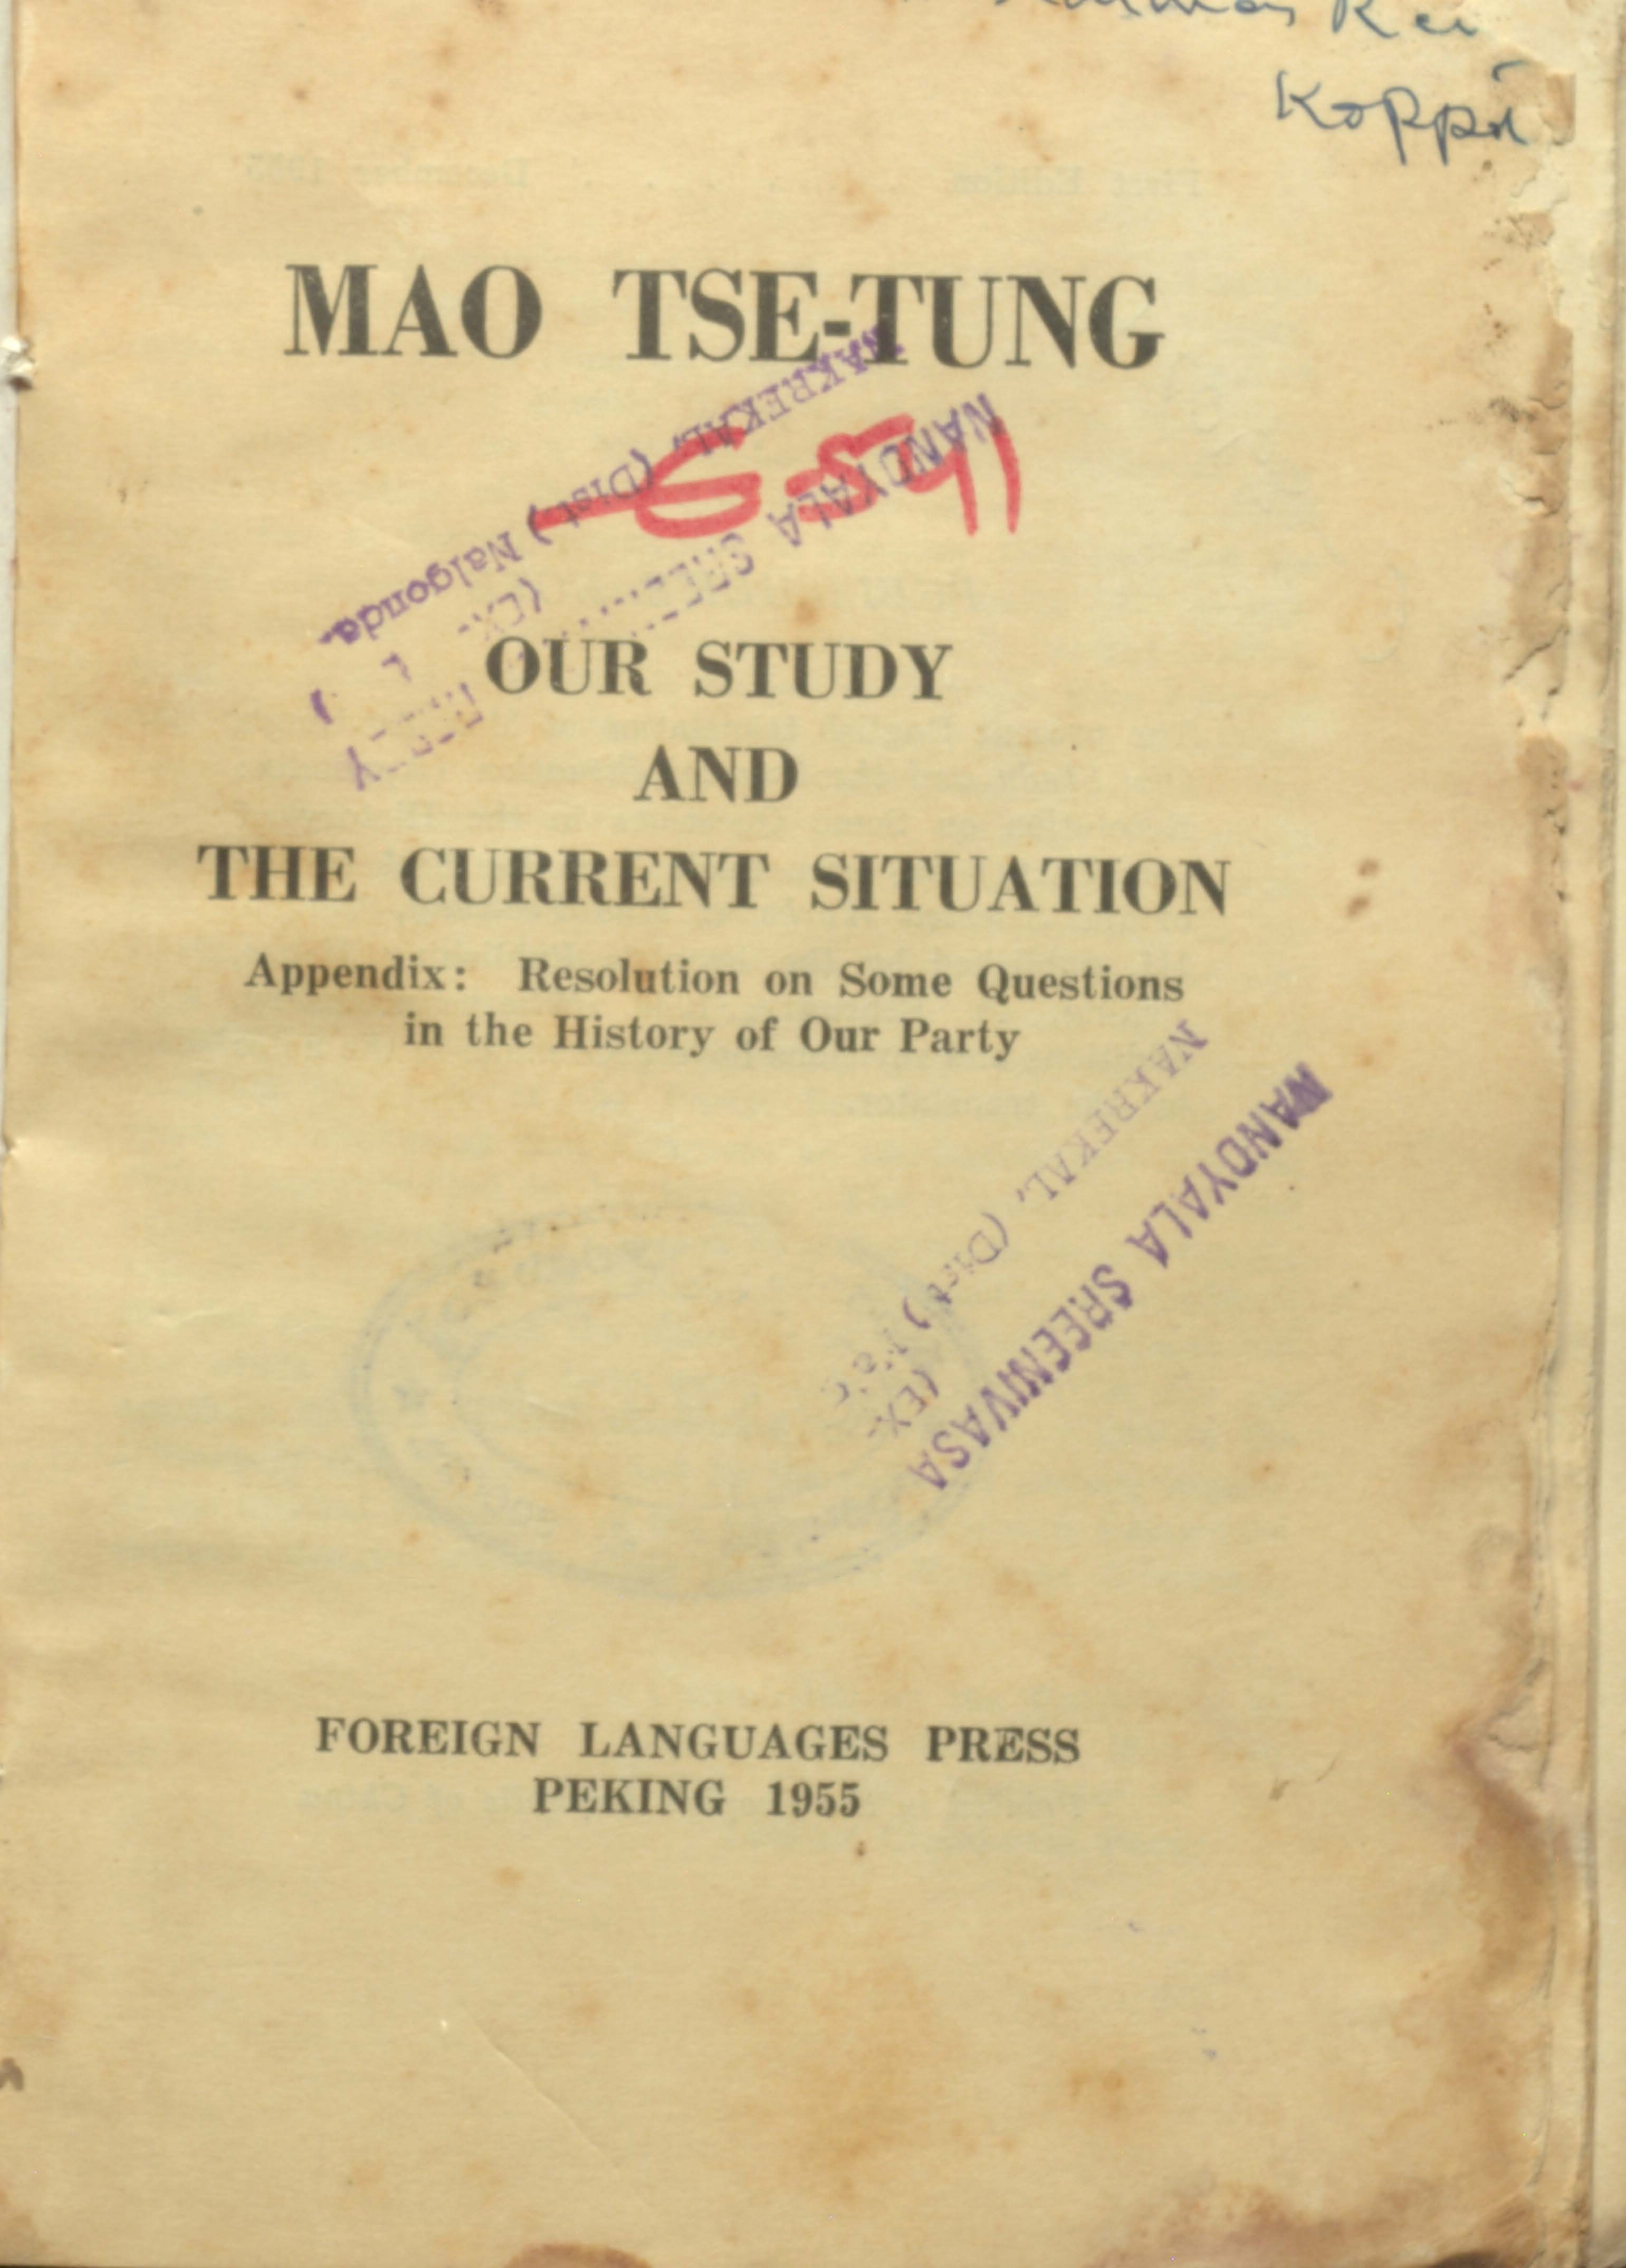 MAO TSE-TUNG our study and the current situation